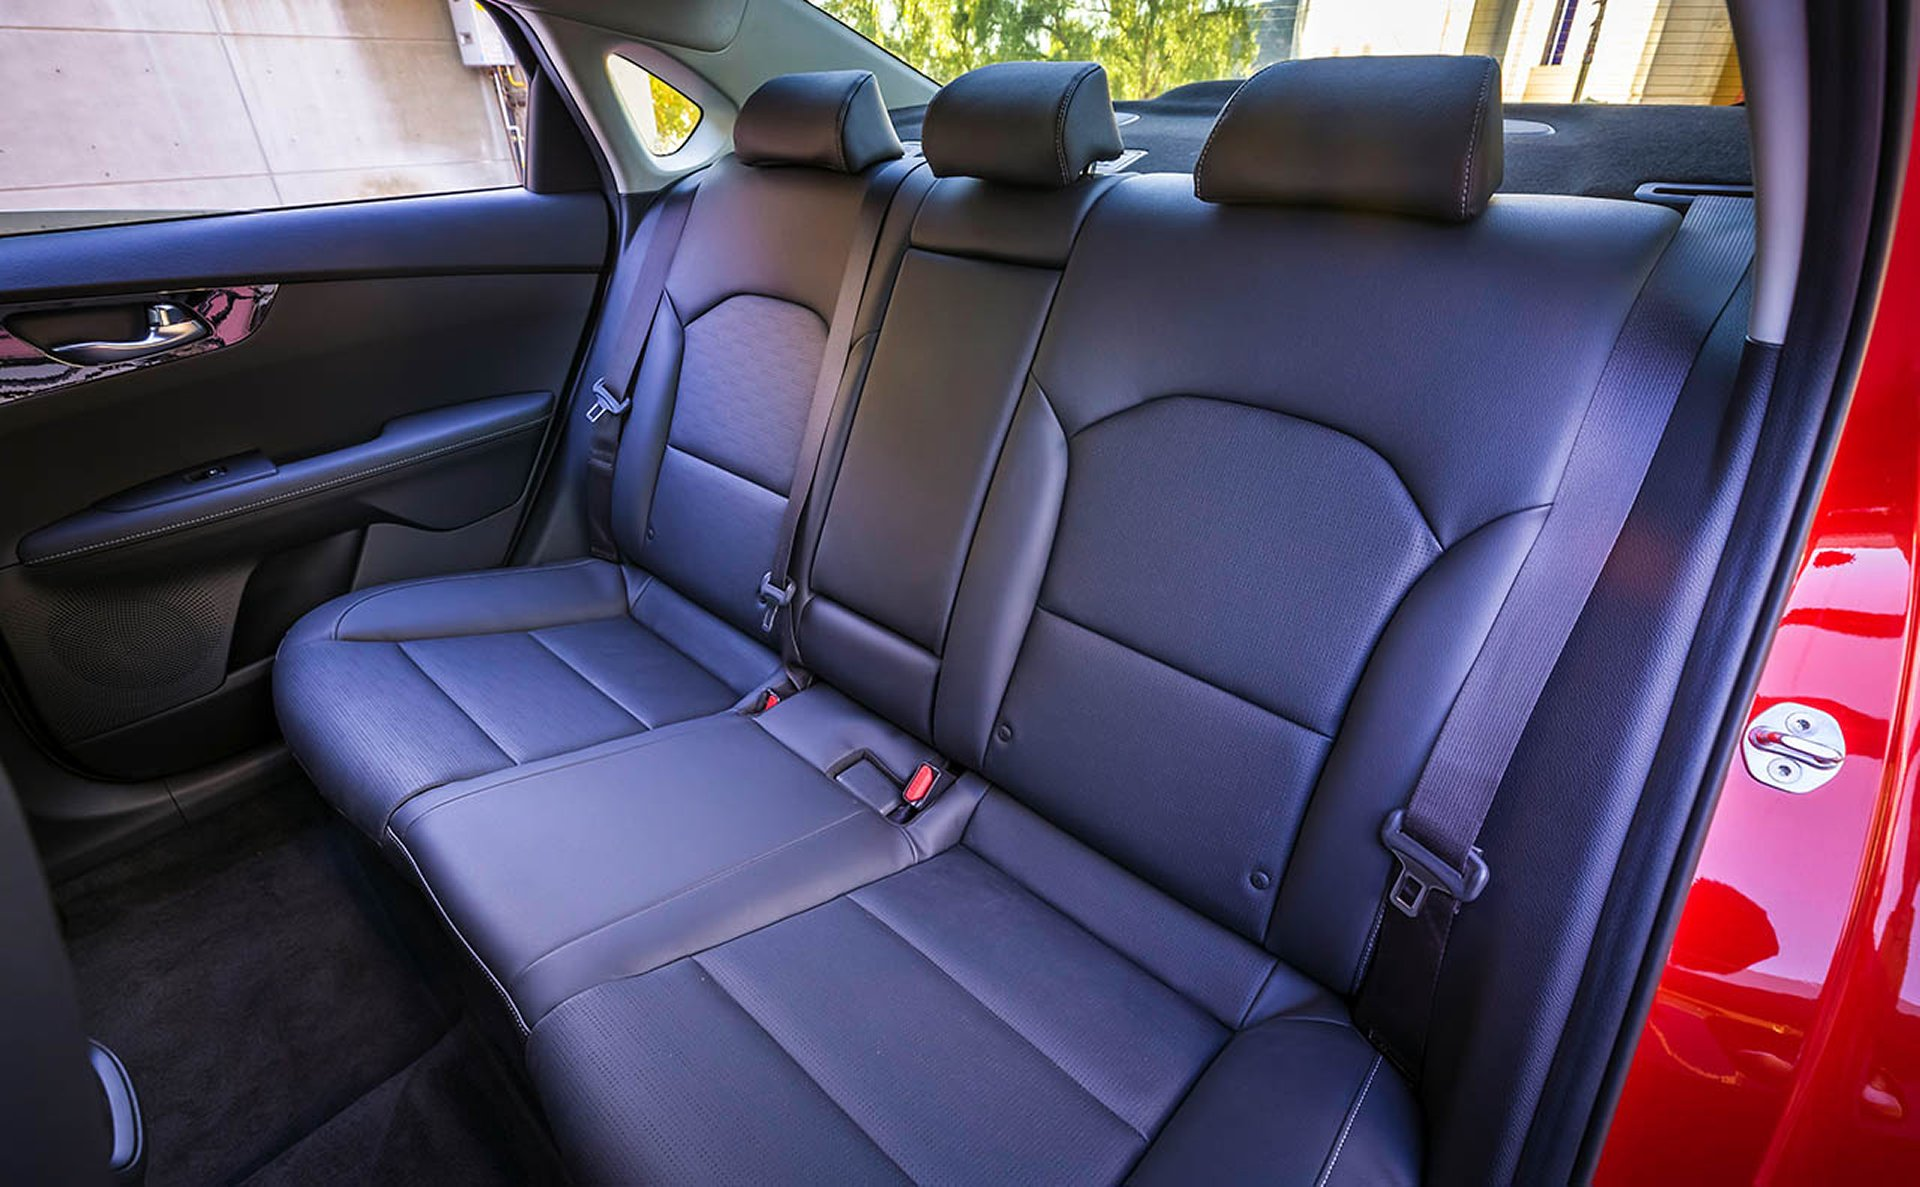 Enjoy Optimum Comfort During Any Drive in the Forte!